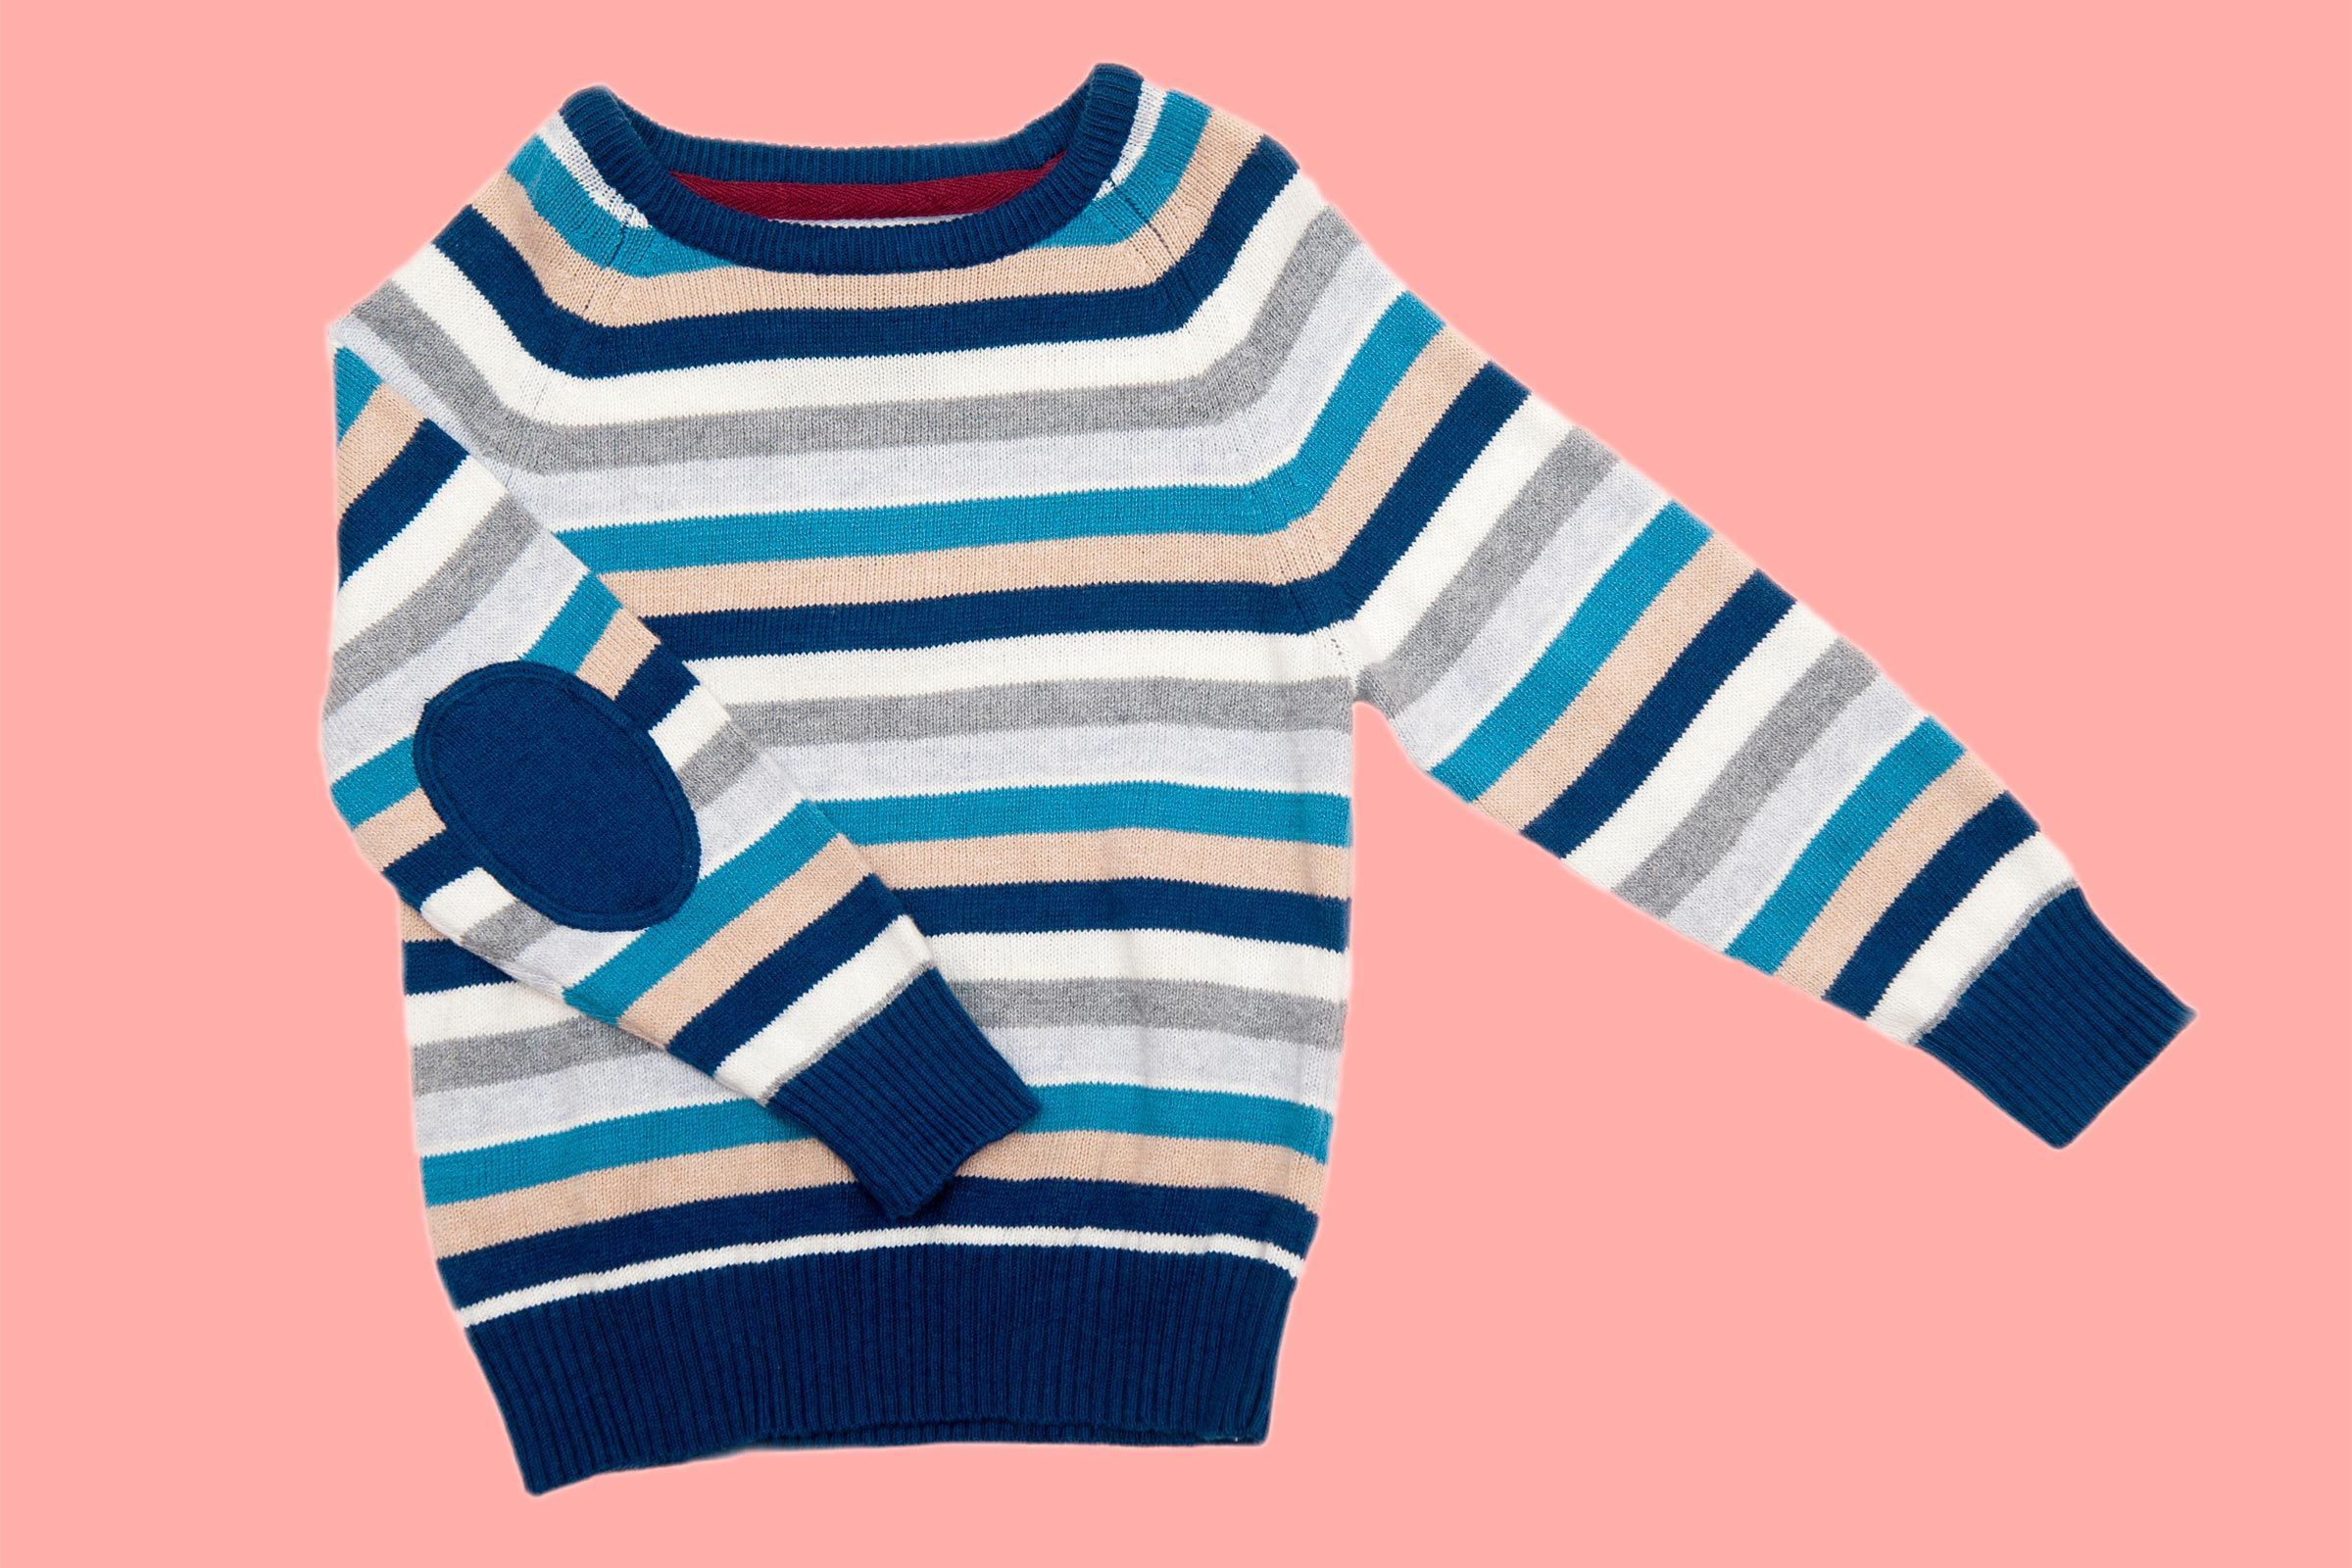 Children warm sweater on a white isolated background elbow patch